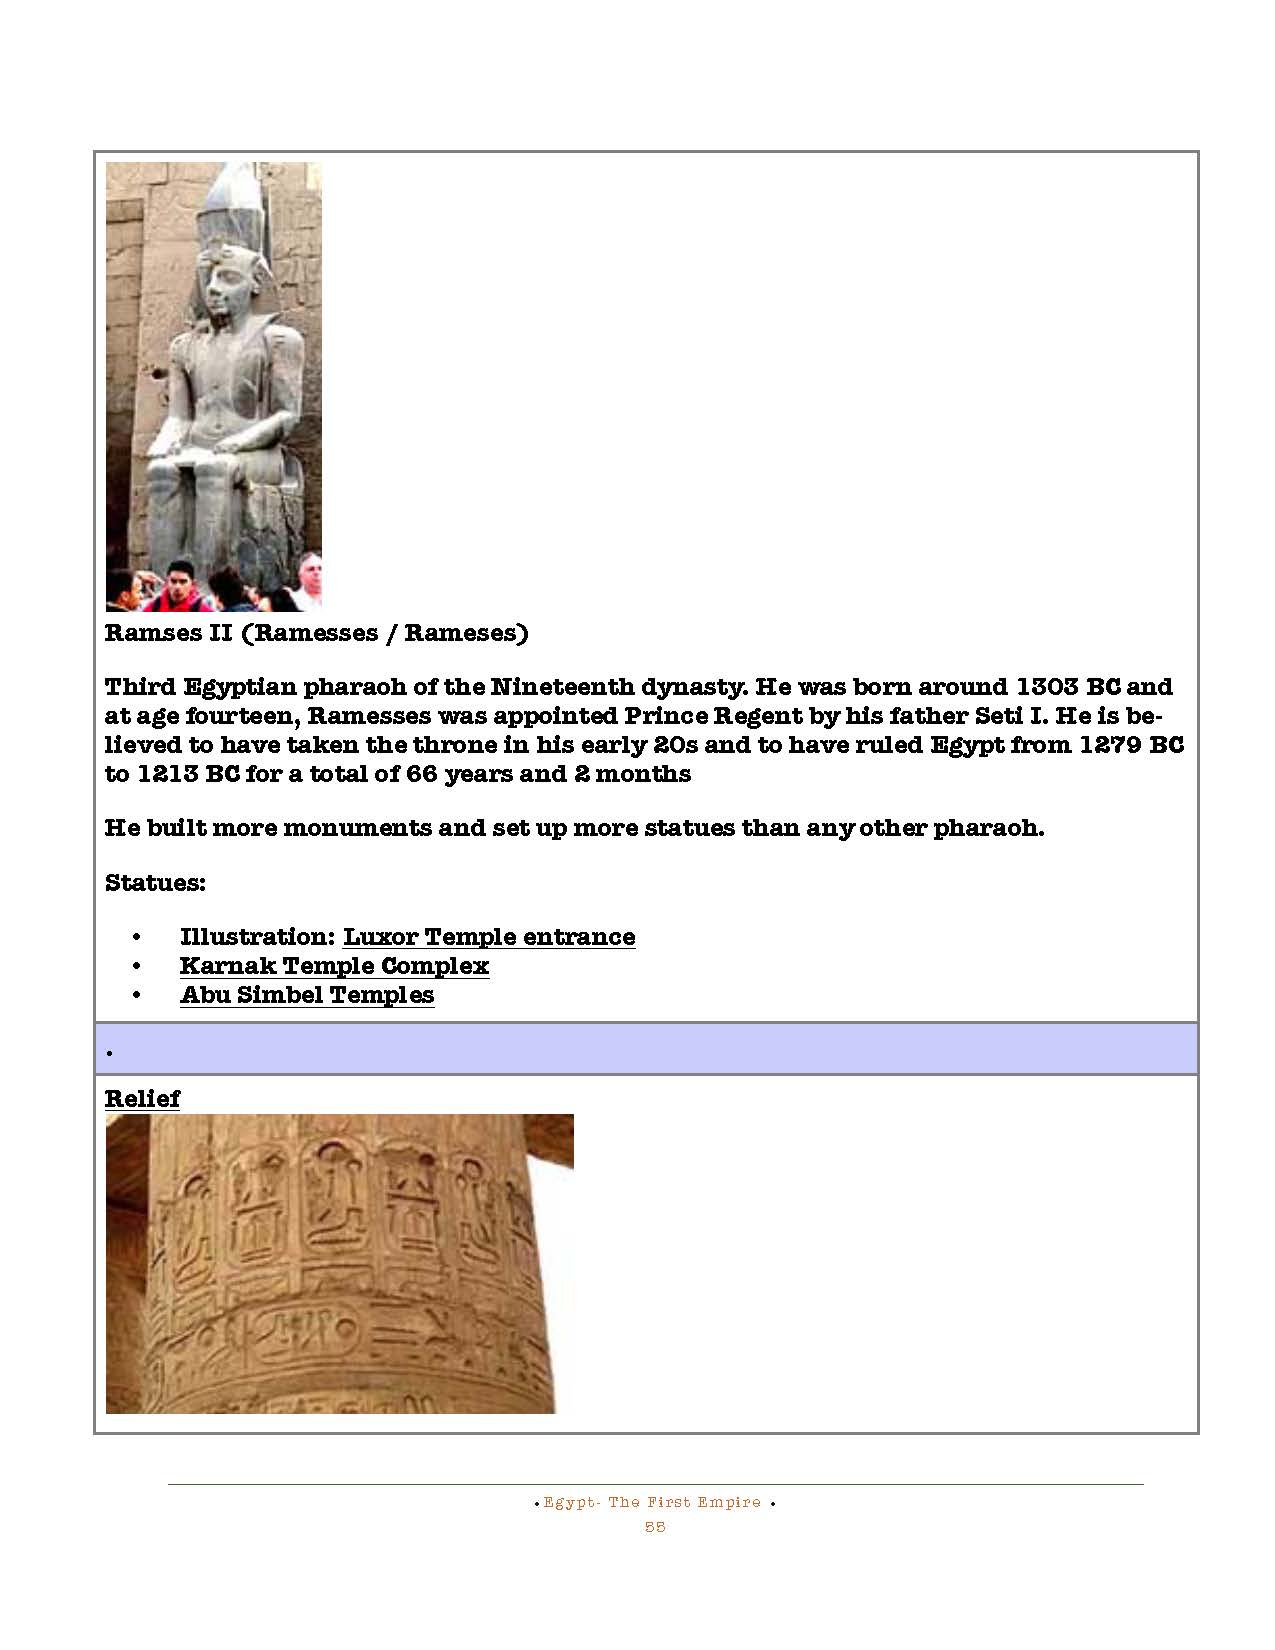 HOCE- Egypt  (First Empire) Notes_Page_055.jpg